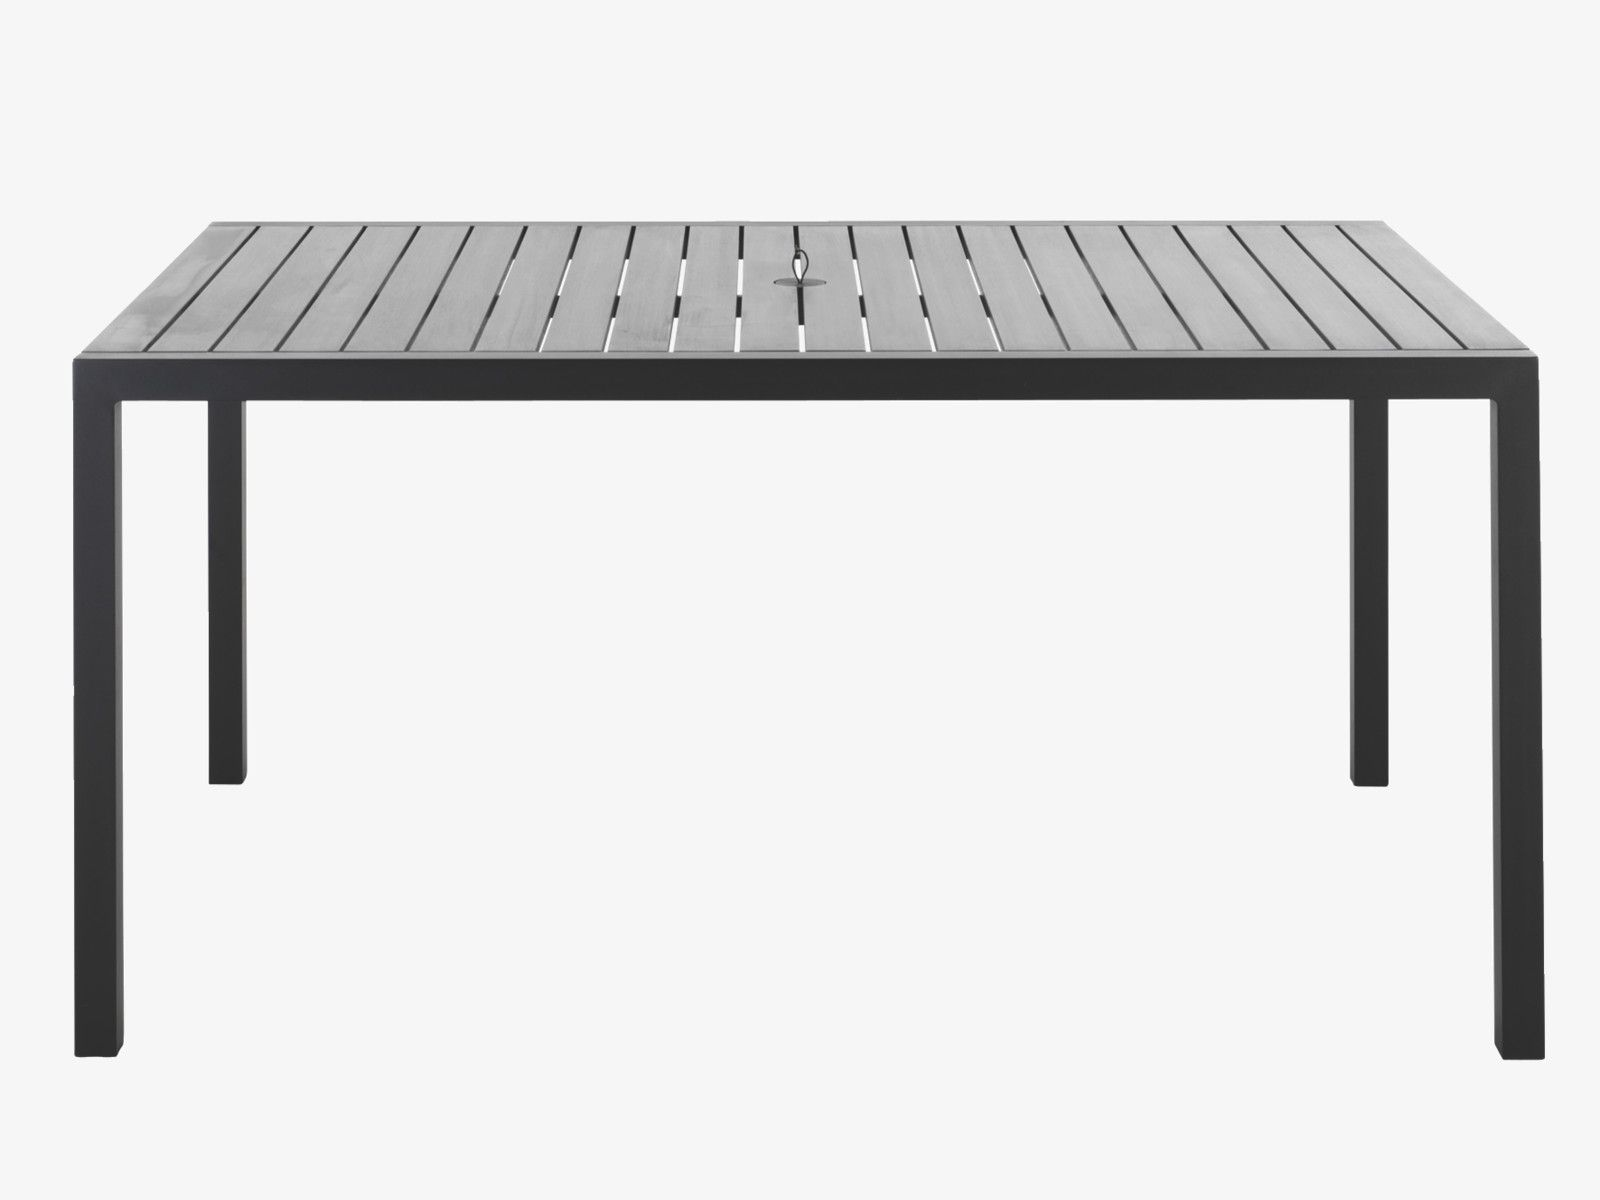 BELIZE BLACKS Metal Black Garden Table   Outdoor U0026 Conservatory  HabitatUK